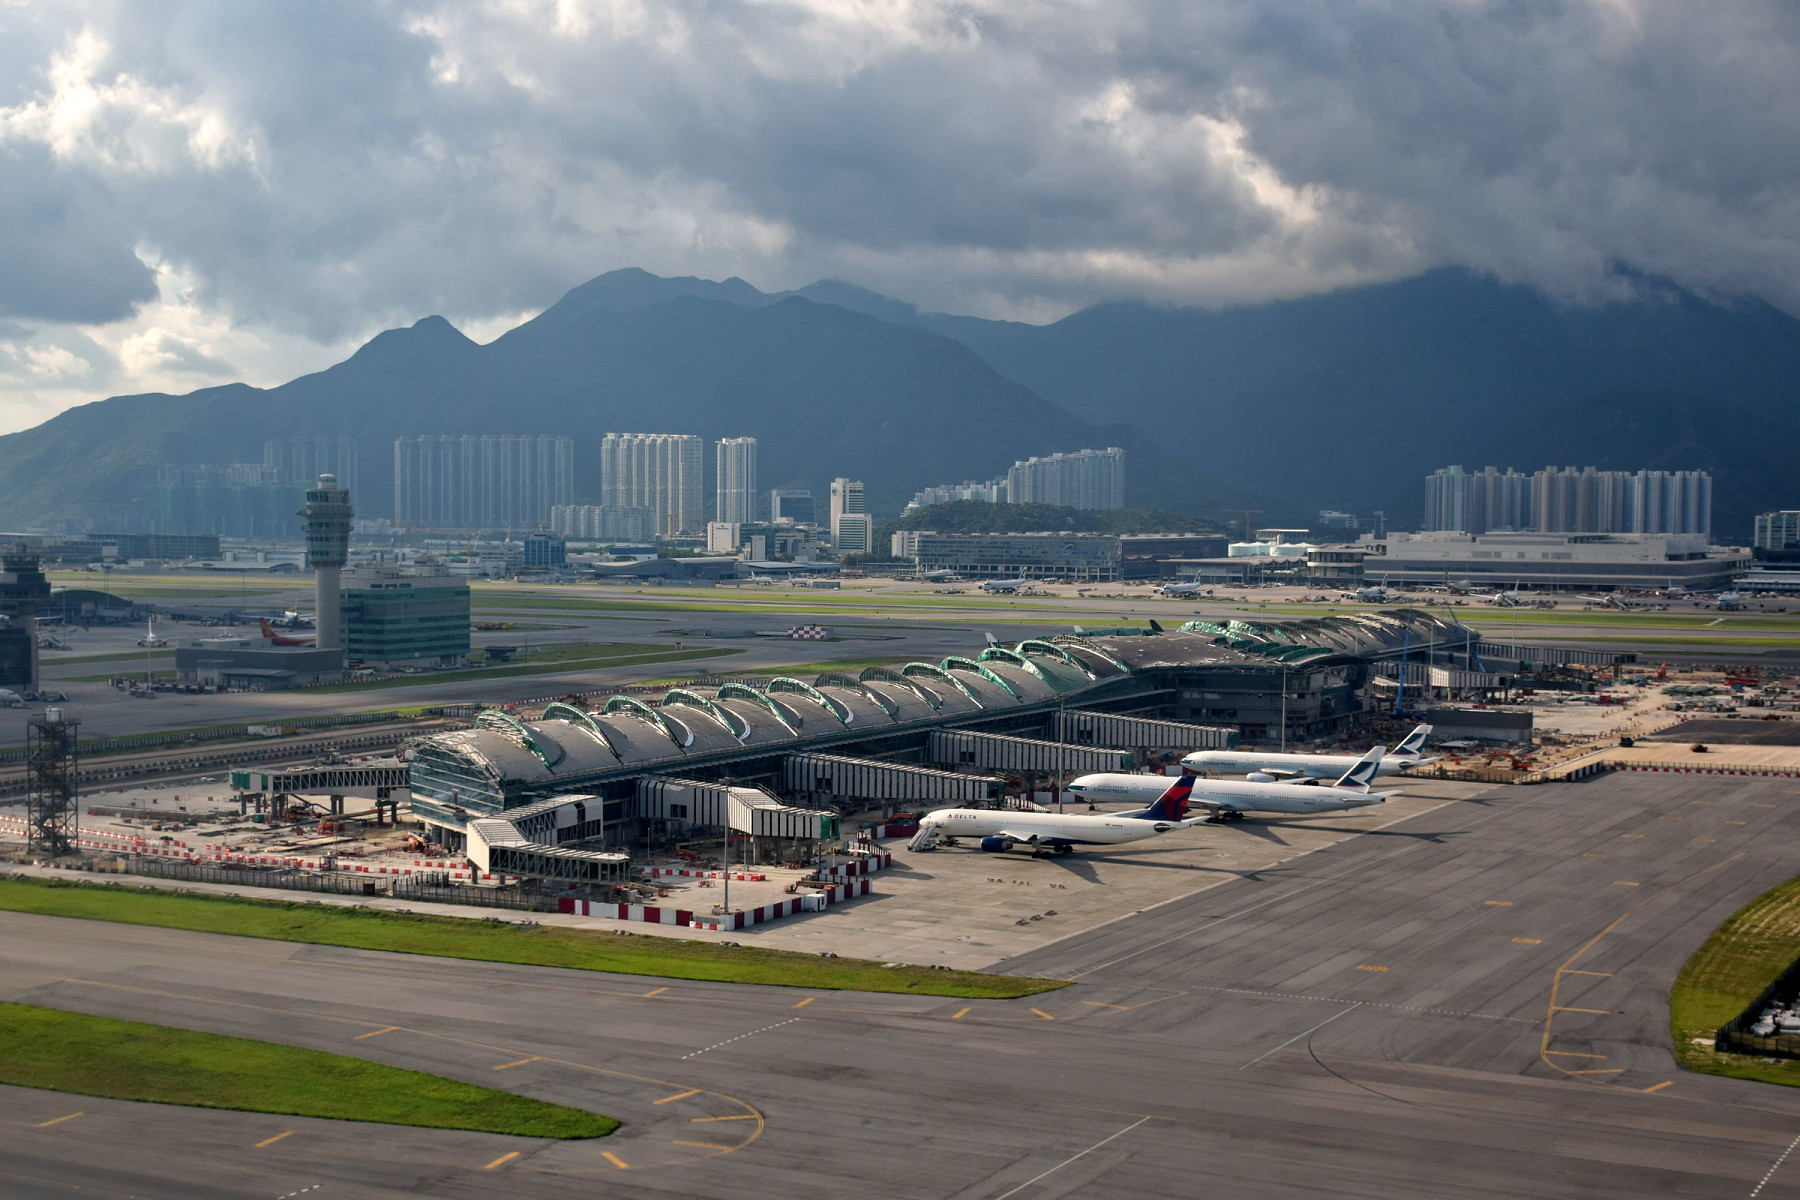 Hong_Kong_International_Airport_Midfield_Concourse.jpg